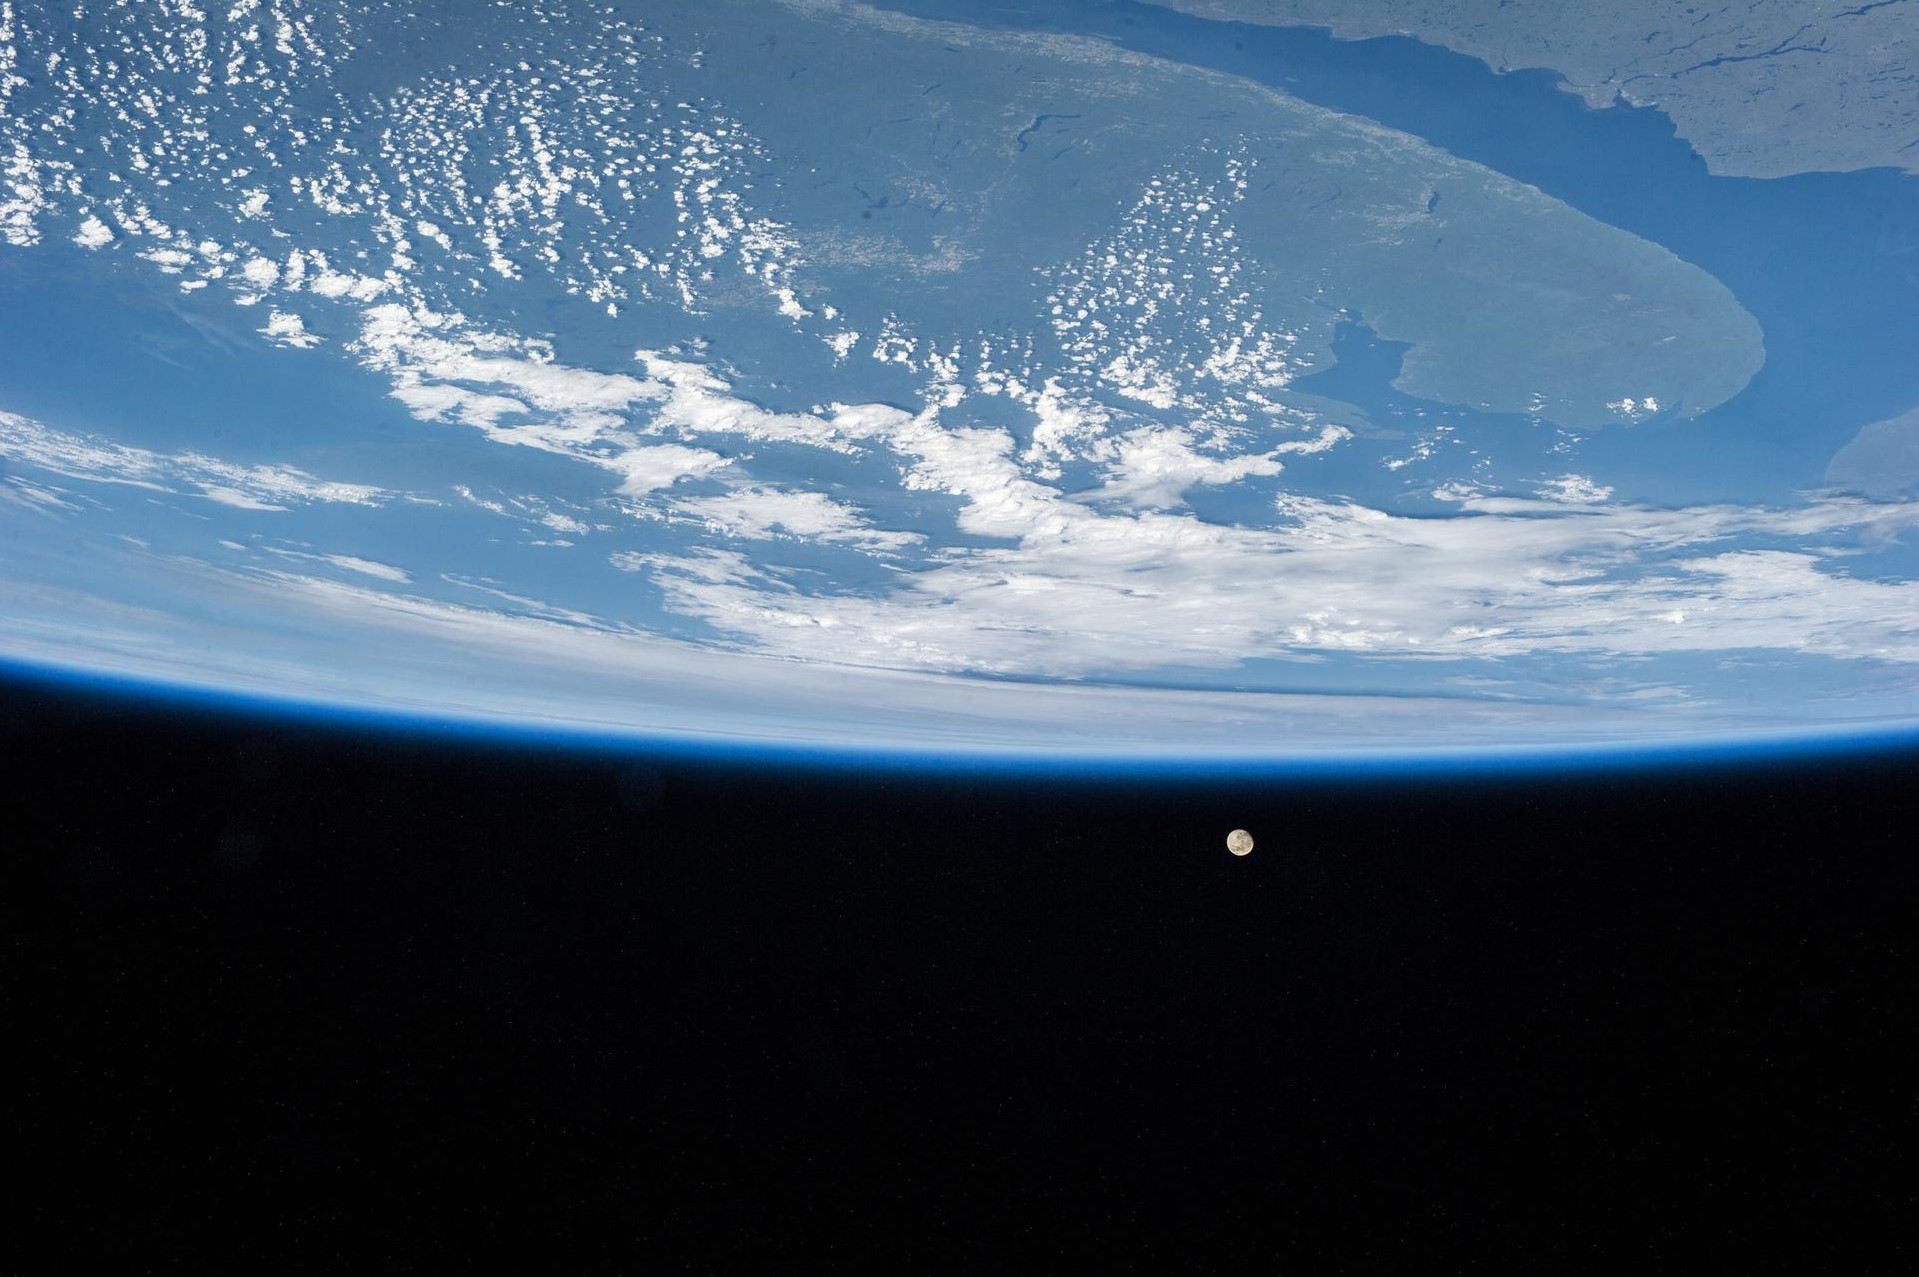 iss036e011045_large